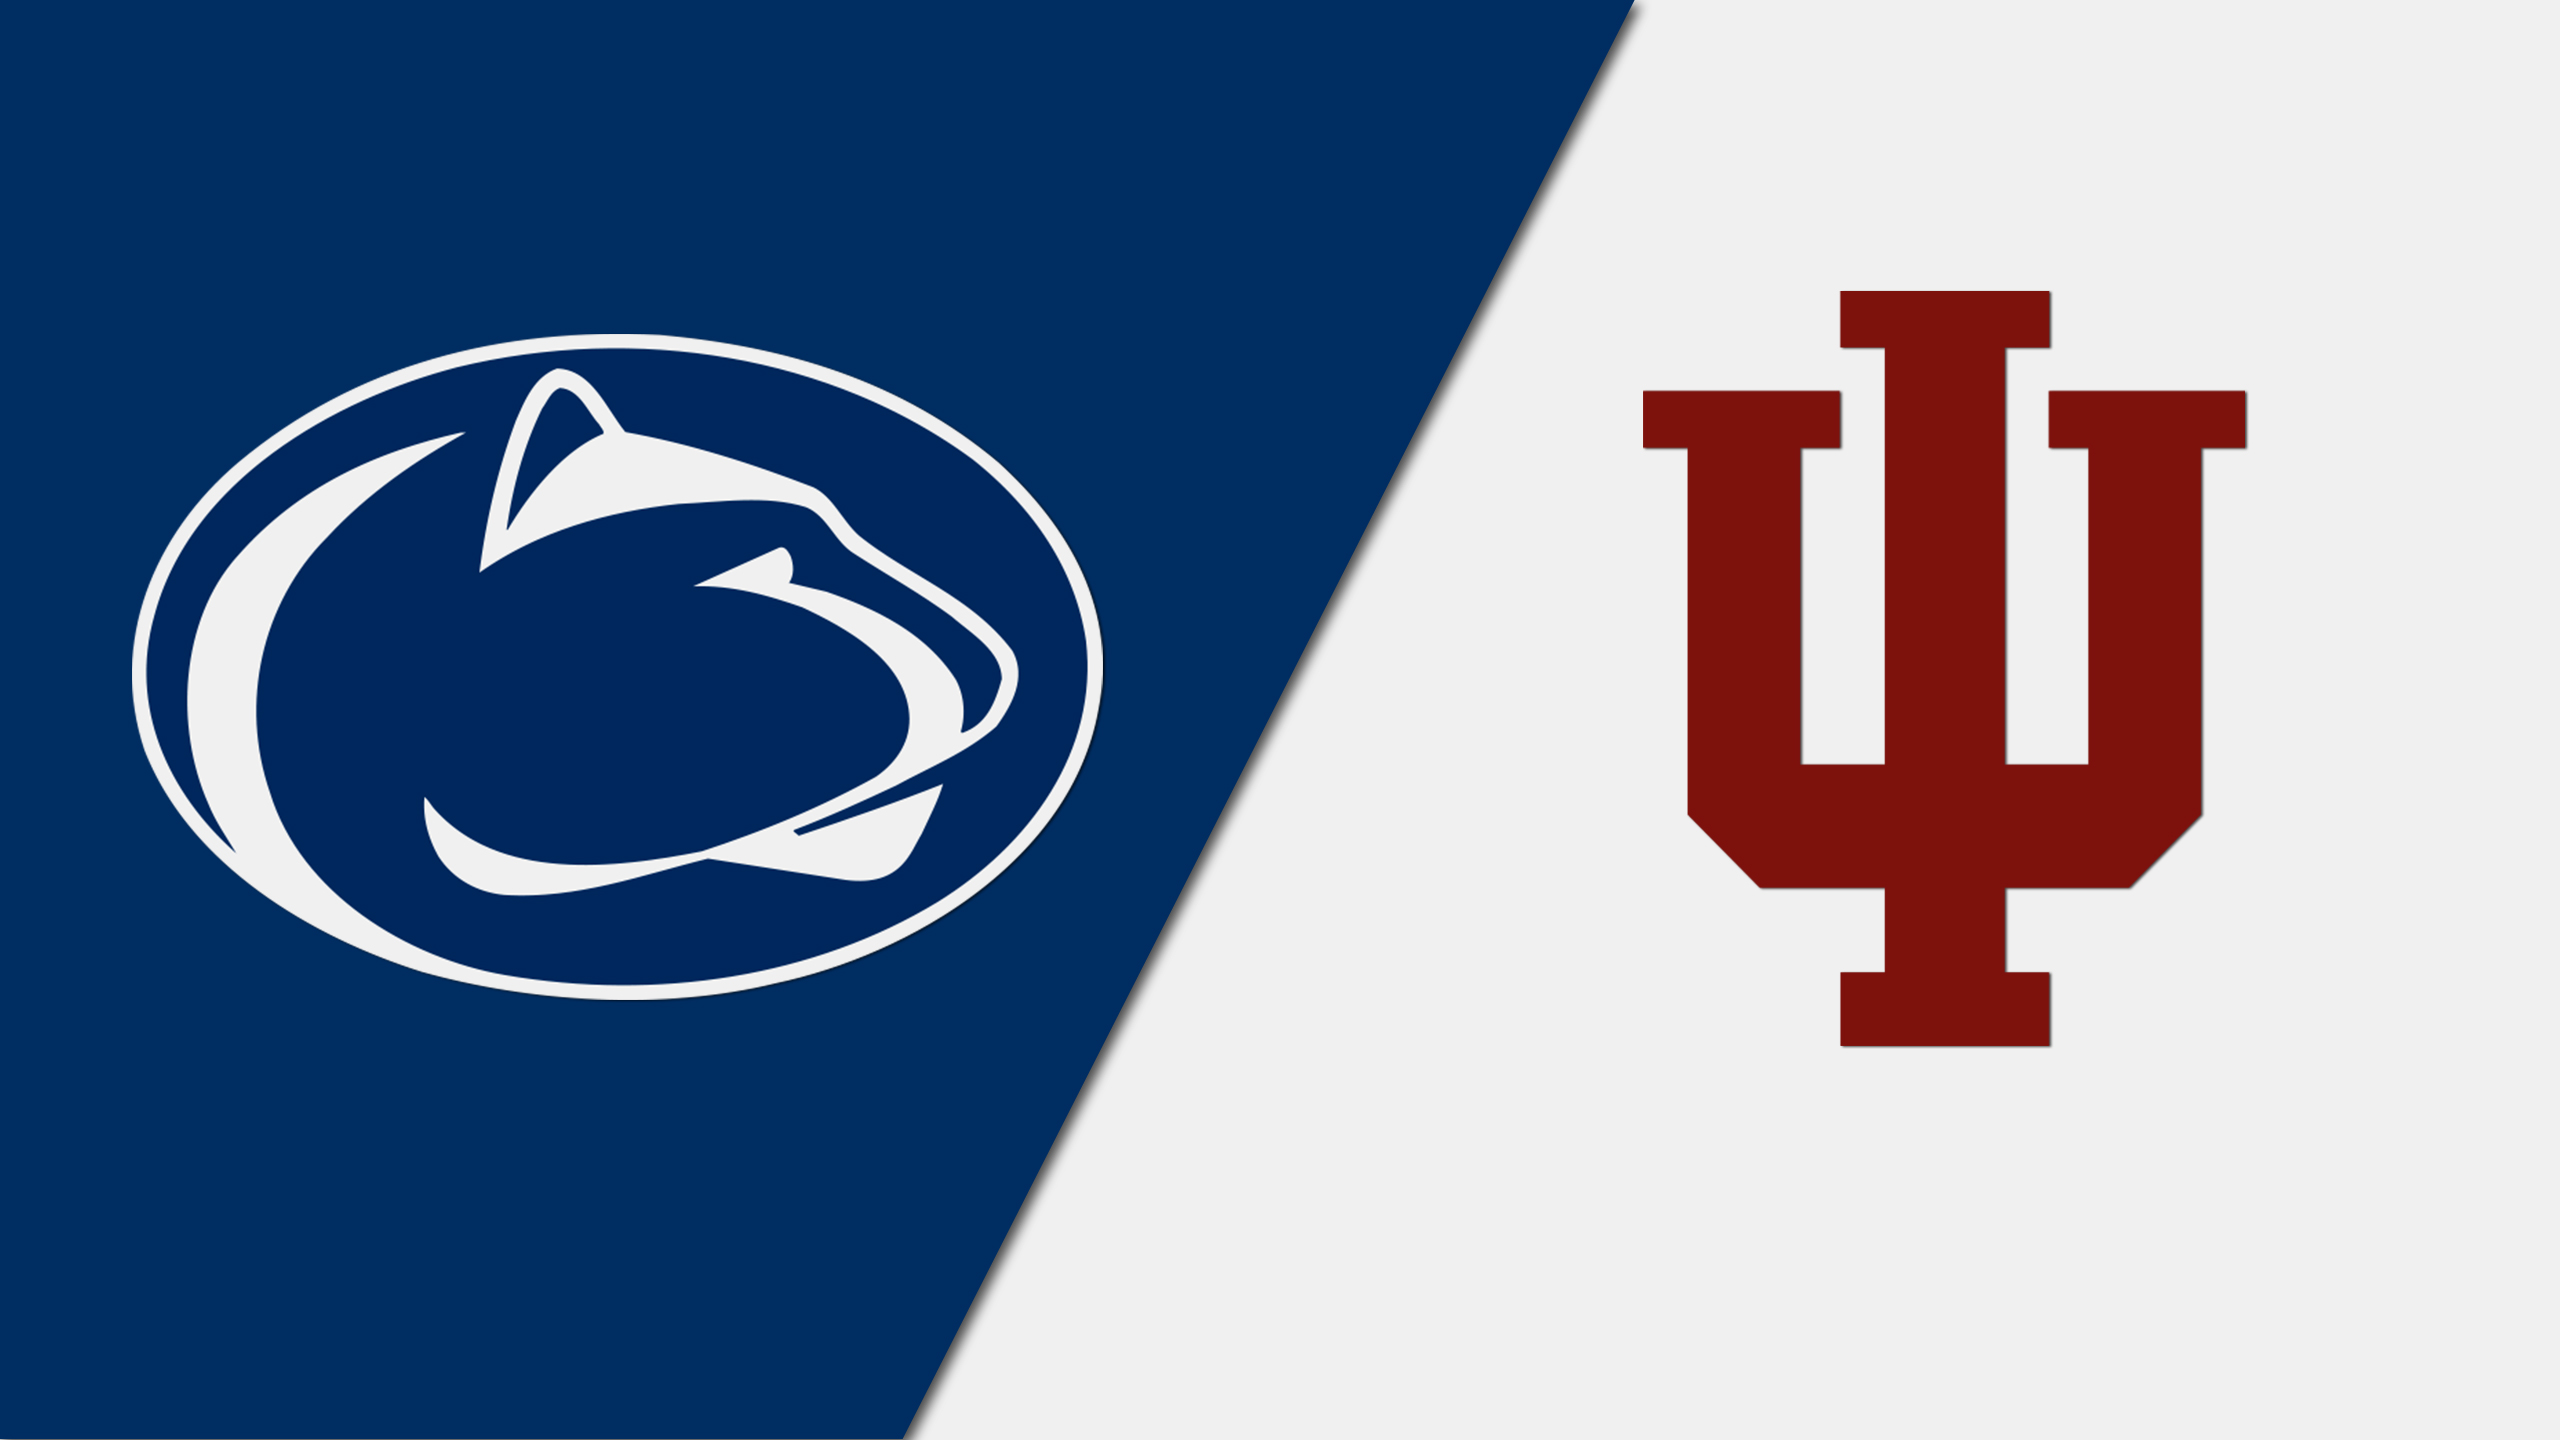 In Spanish - #18 Penn State vs. Indiana (Football)